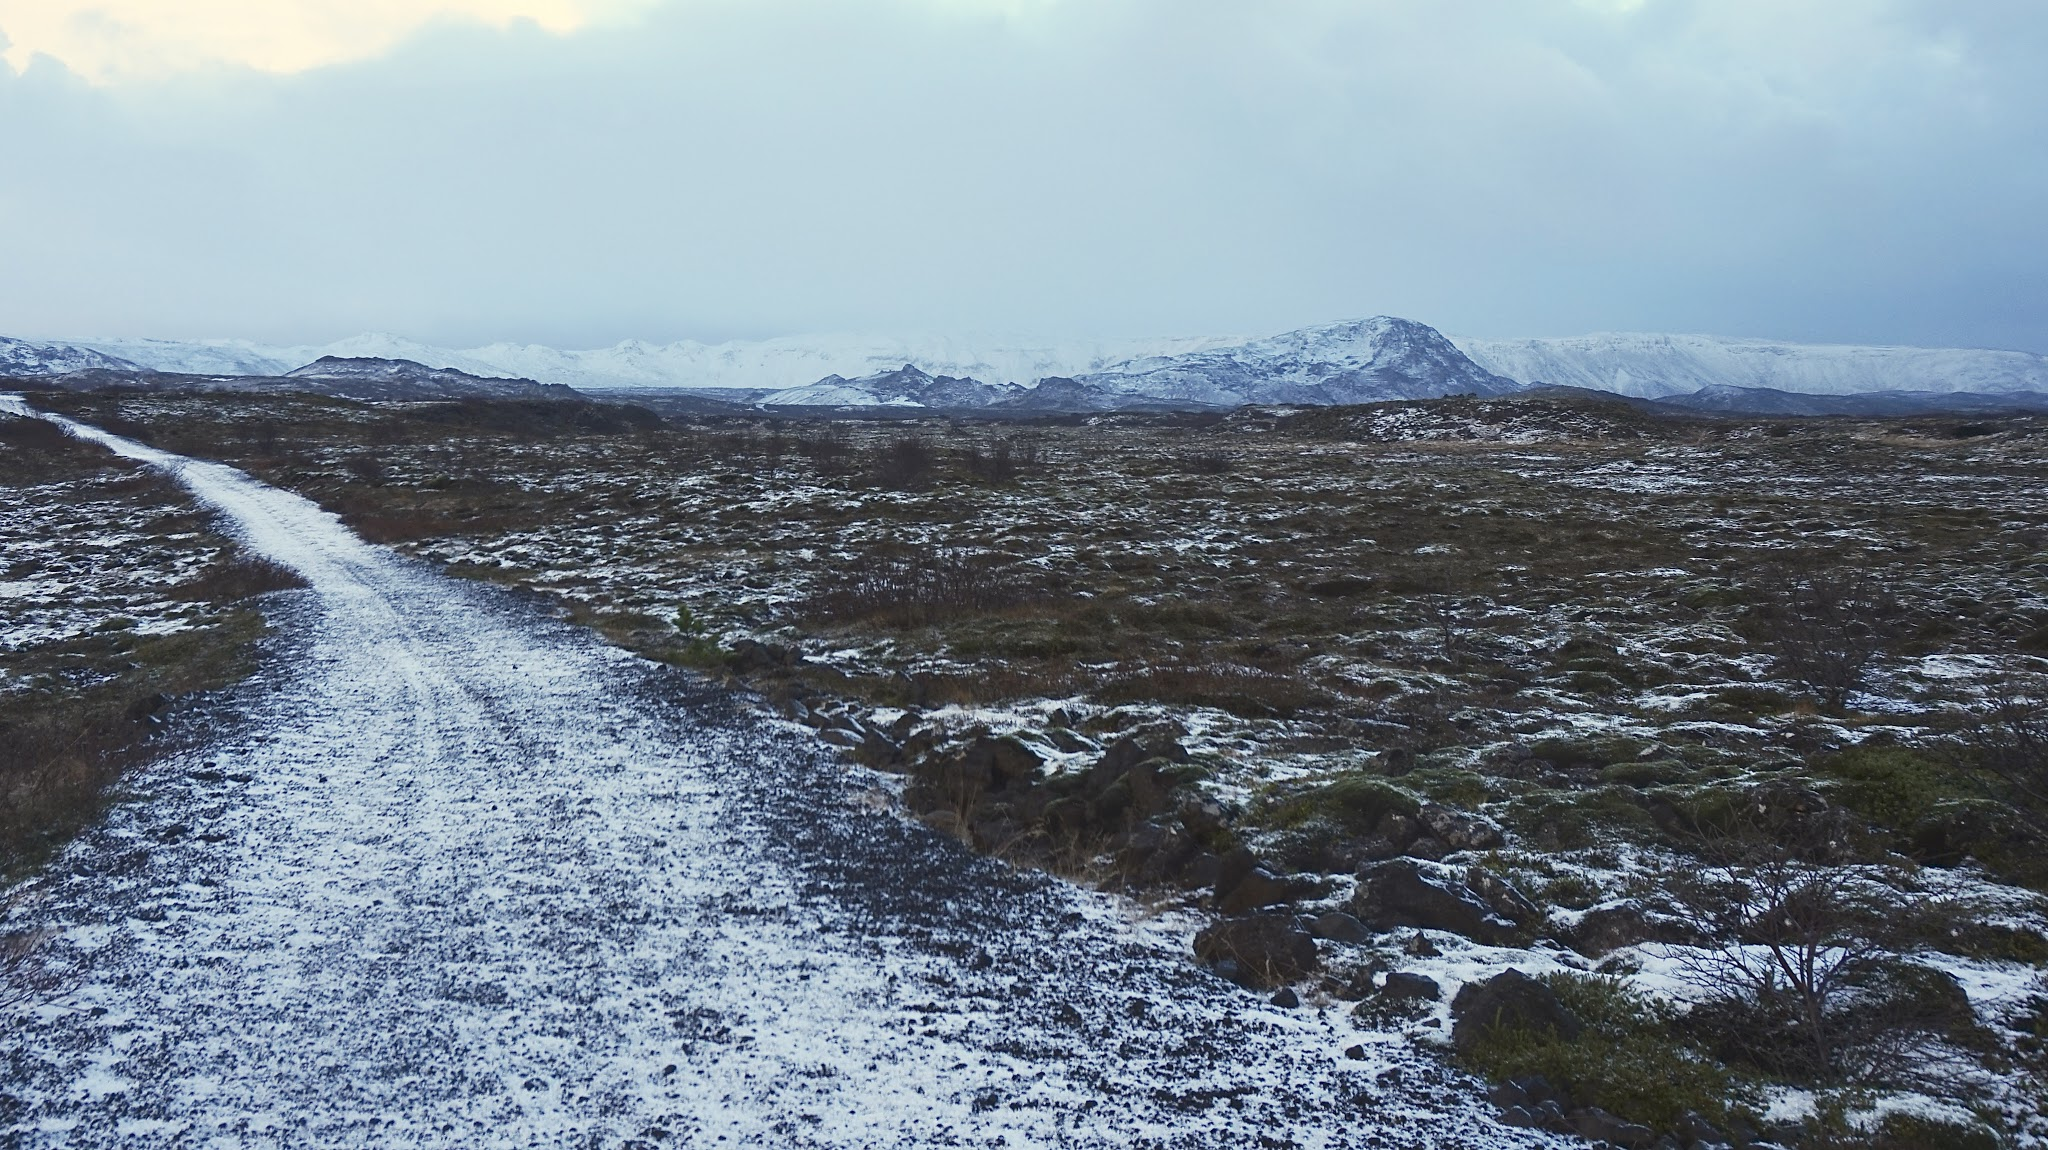 snowy path leading to snowy mountains